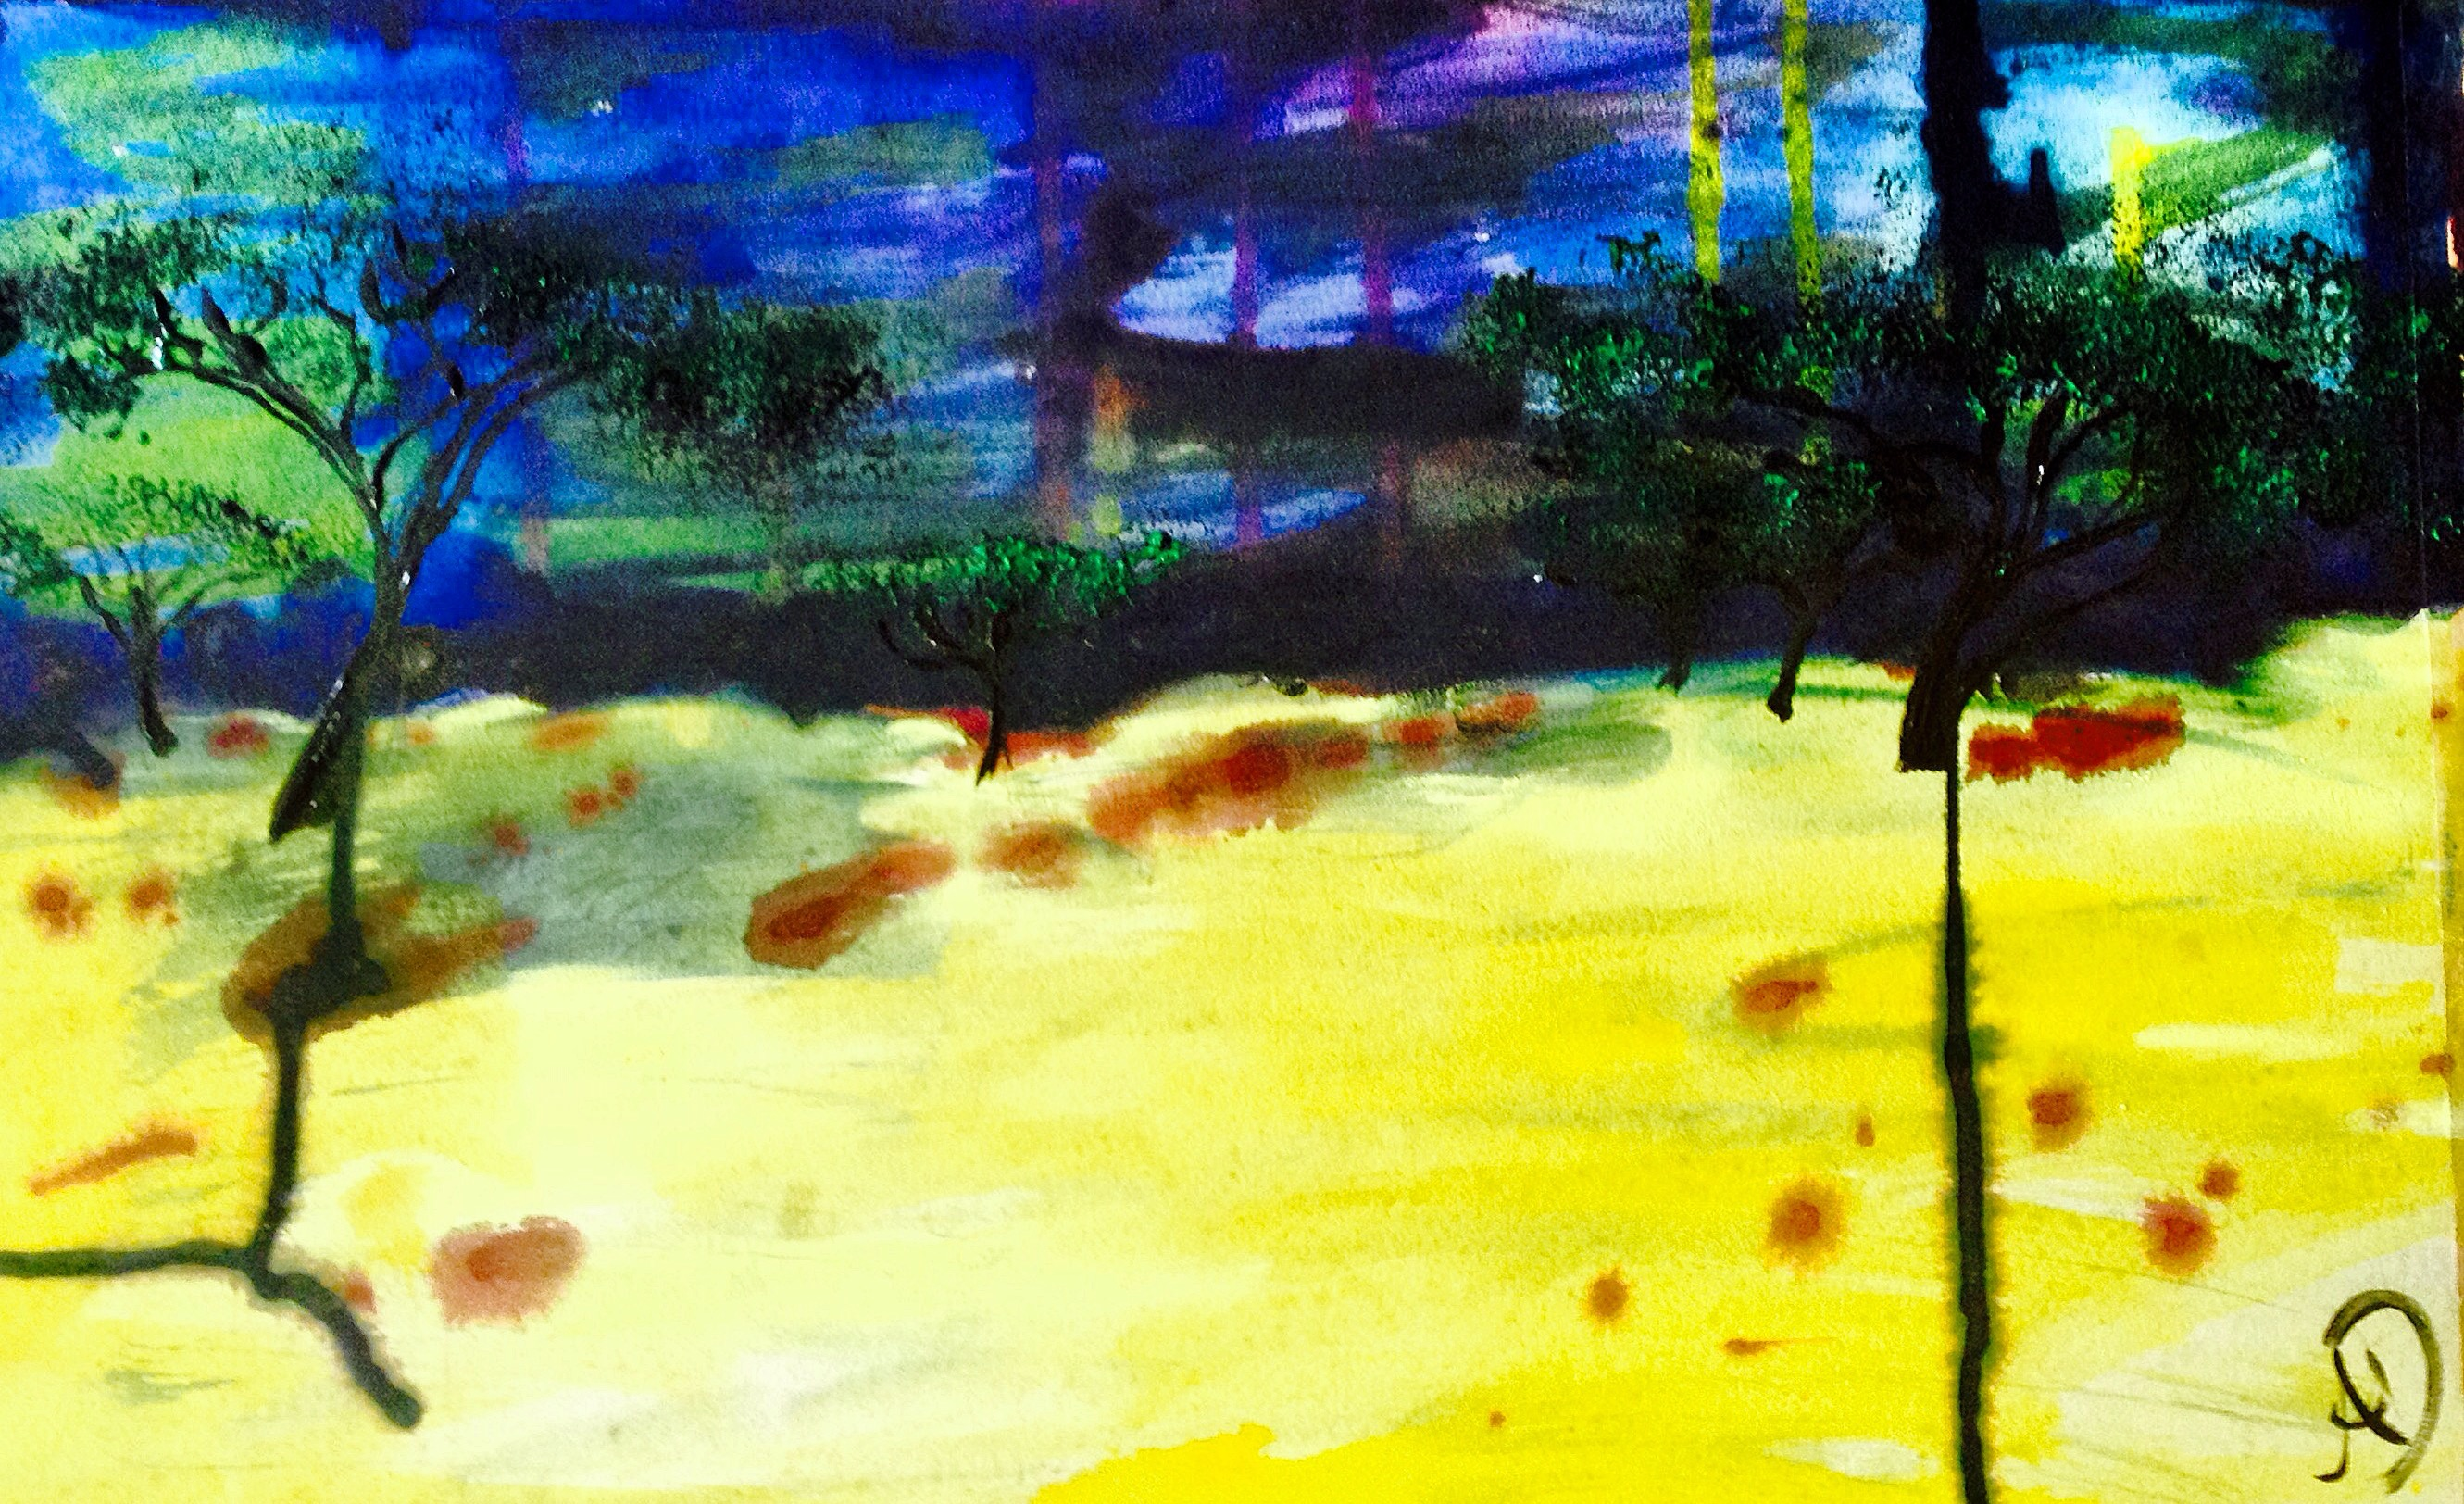 Endless Abstract Land - acrylic and ink painting by Ali Dunnell